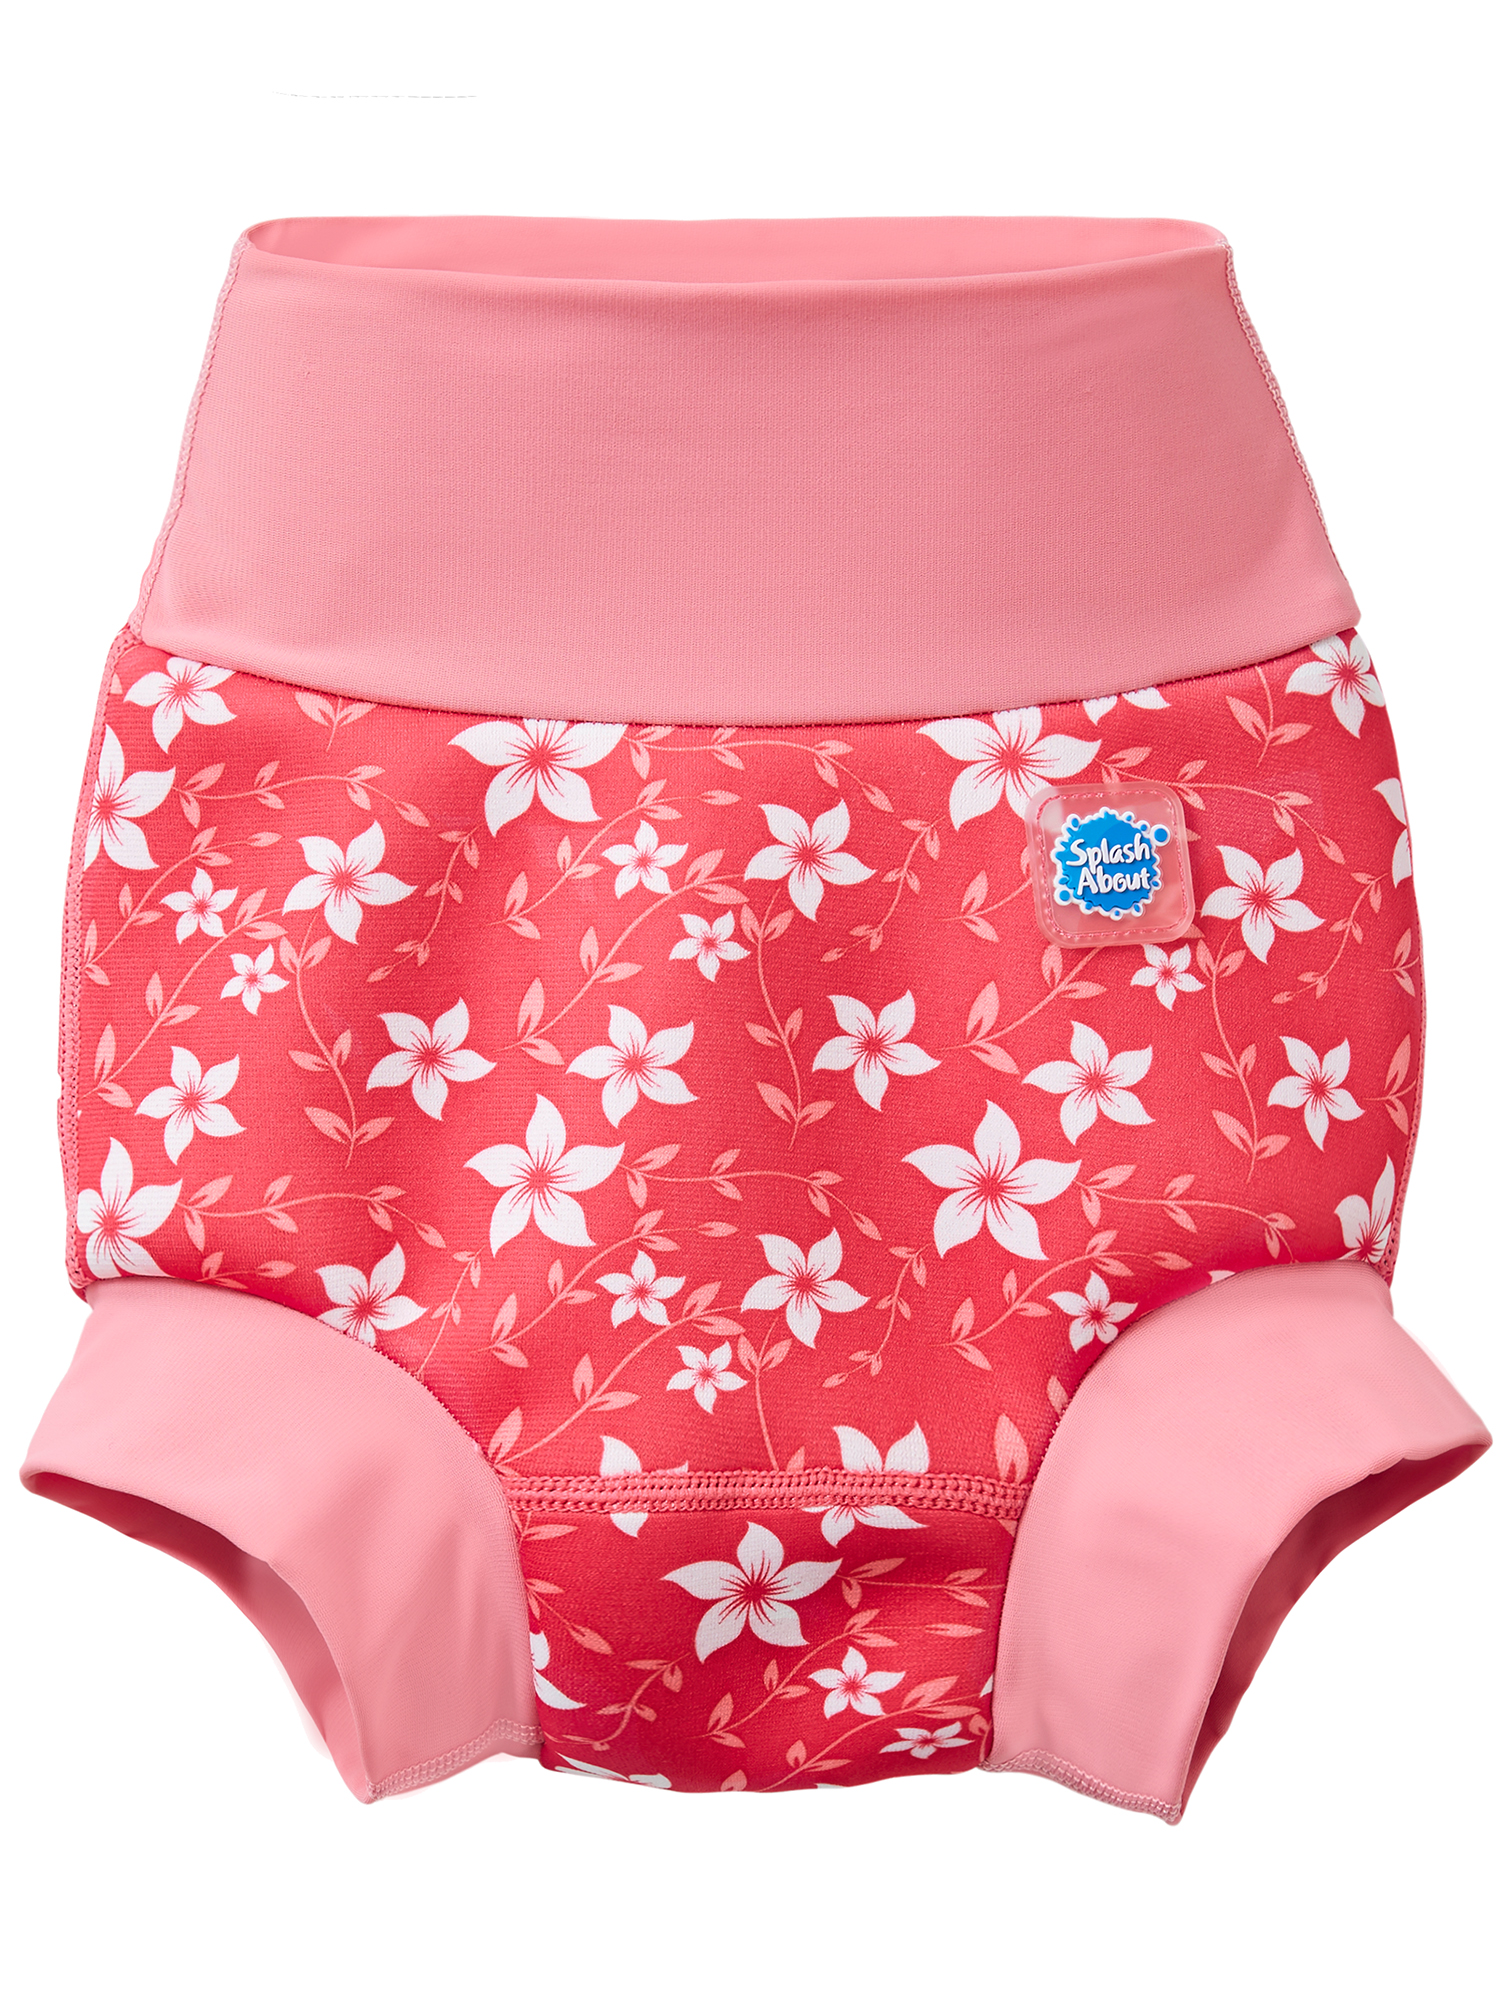 Splash About New Improved Happy Nappy Swim Diaper, Pink Blossom (Choose Size)